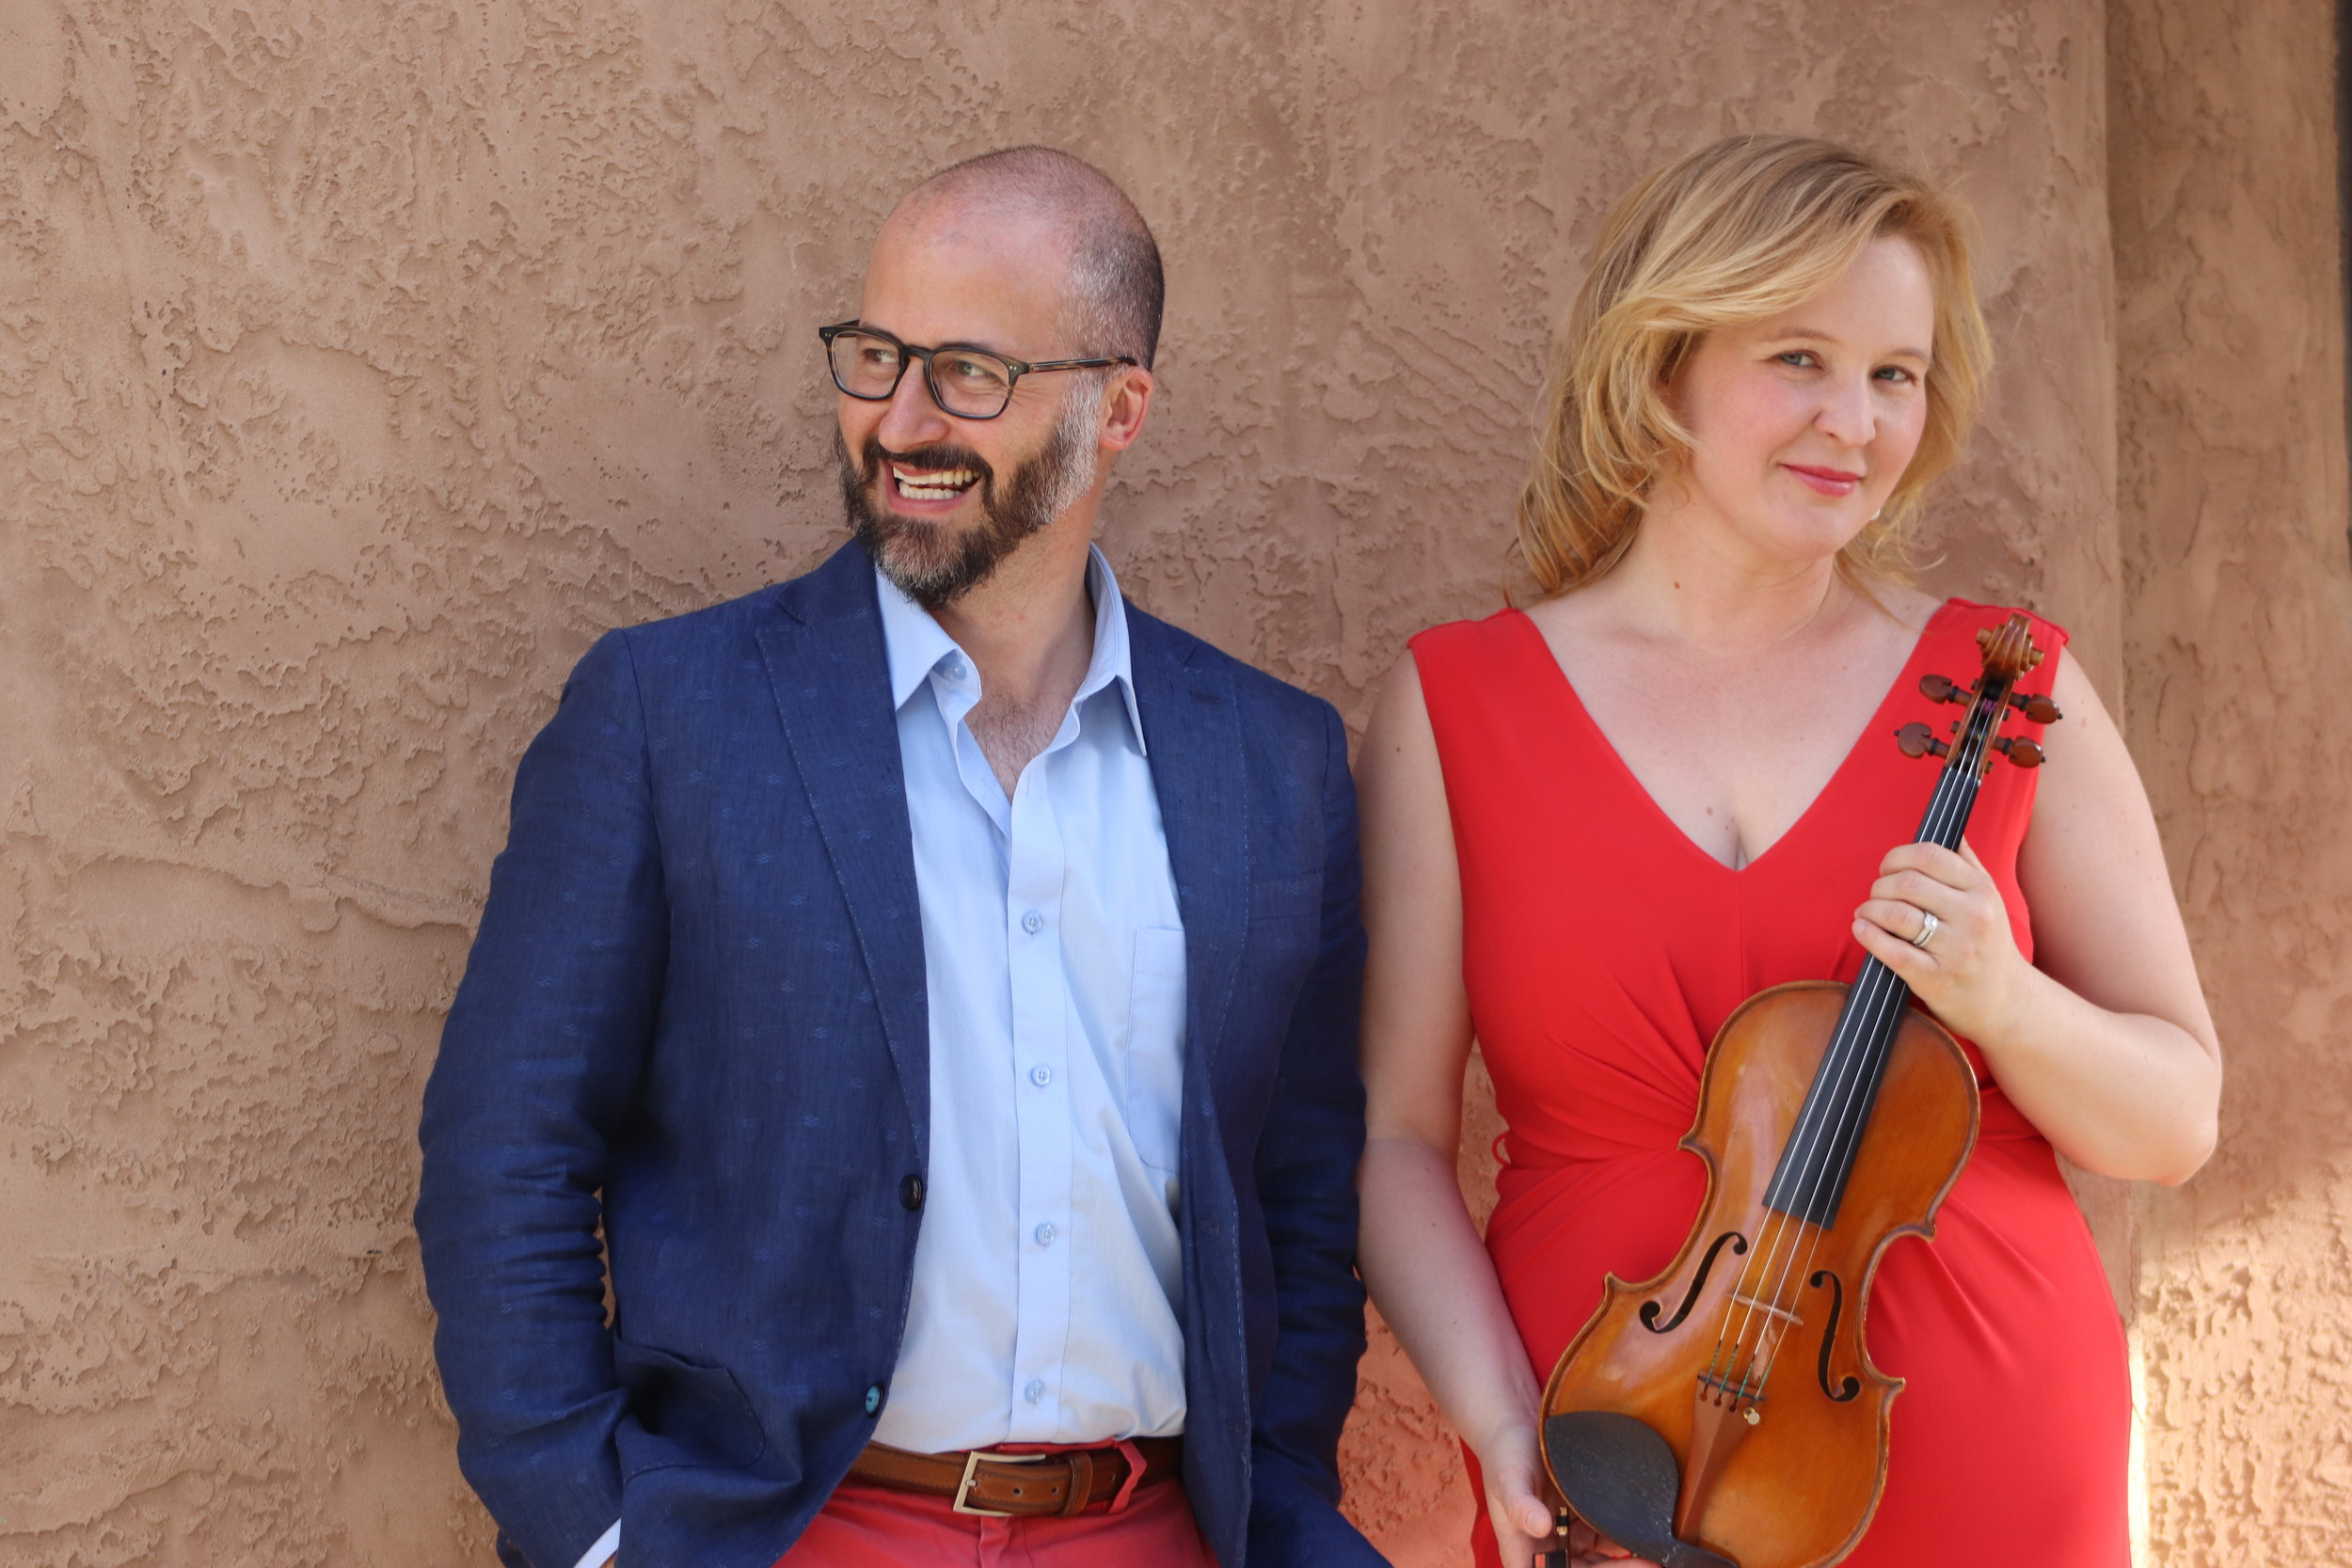 The Young Tiranno Duo was formed in 2018 after many years of performances together in opera and musical theater productions. Violinist/pianist Elizabeth Young-Tiranno and tenor John Tiranno, equally accomplished in their individual careers, have now joined forces as a duo to perform their unique and varied repertoire. Most recently heard in New York and New Mexico, they are the curators of the Las Palomas Concert Series in Santa Fe, now in its second season. Recently married, they make their home in Santa Fe but travel frequently for performances across the country.